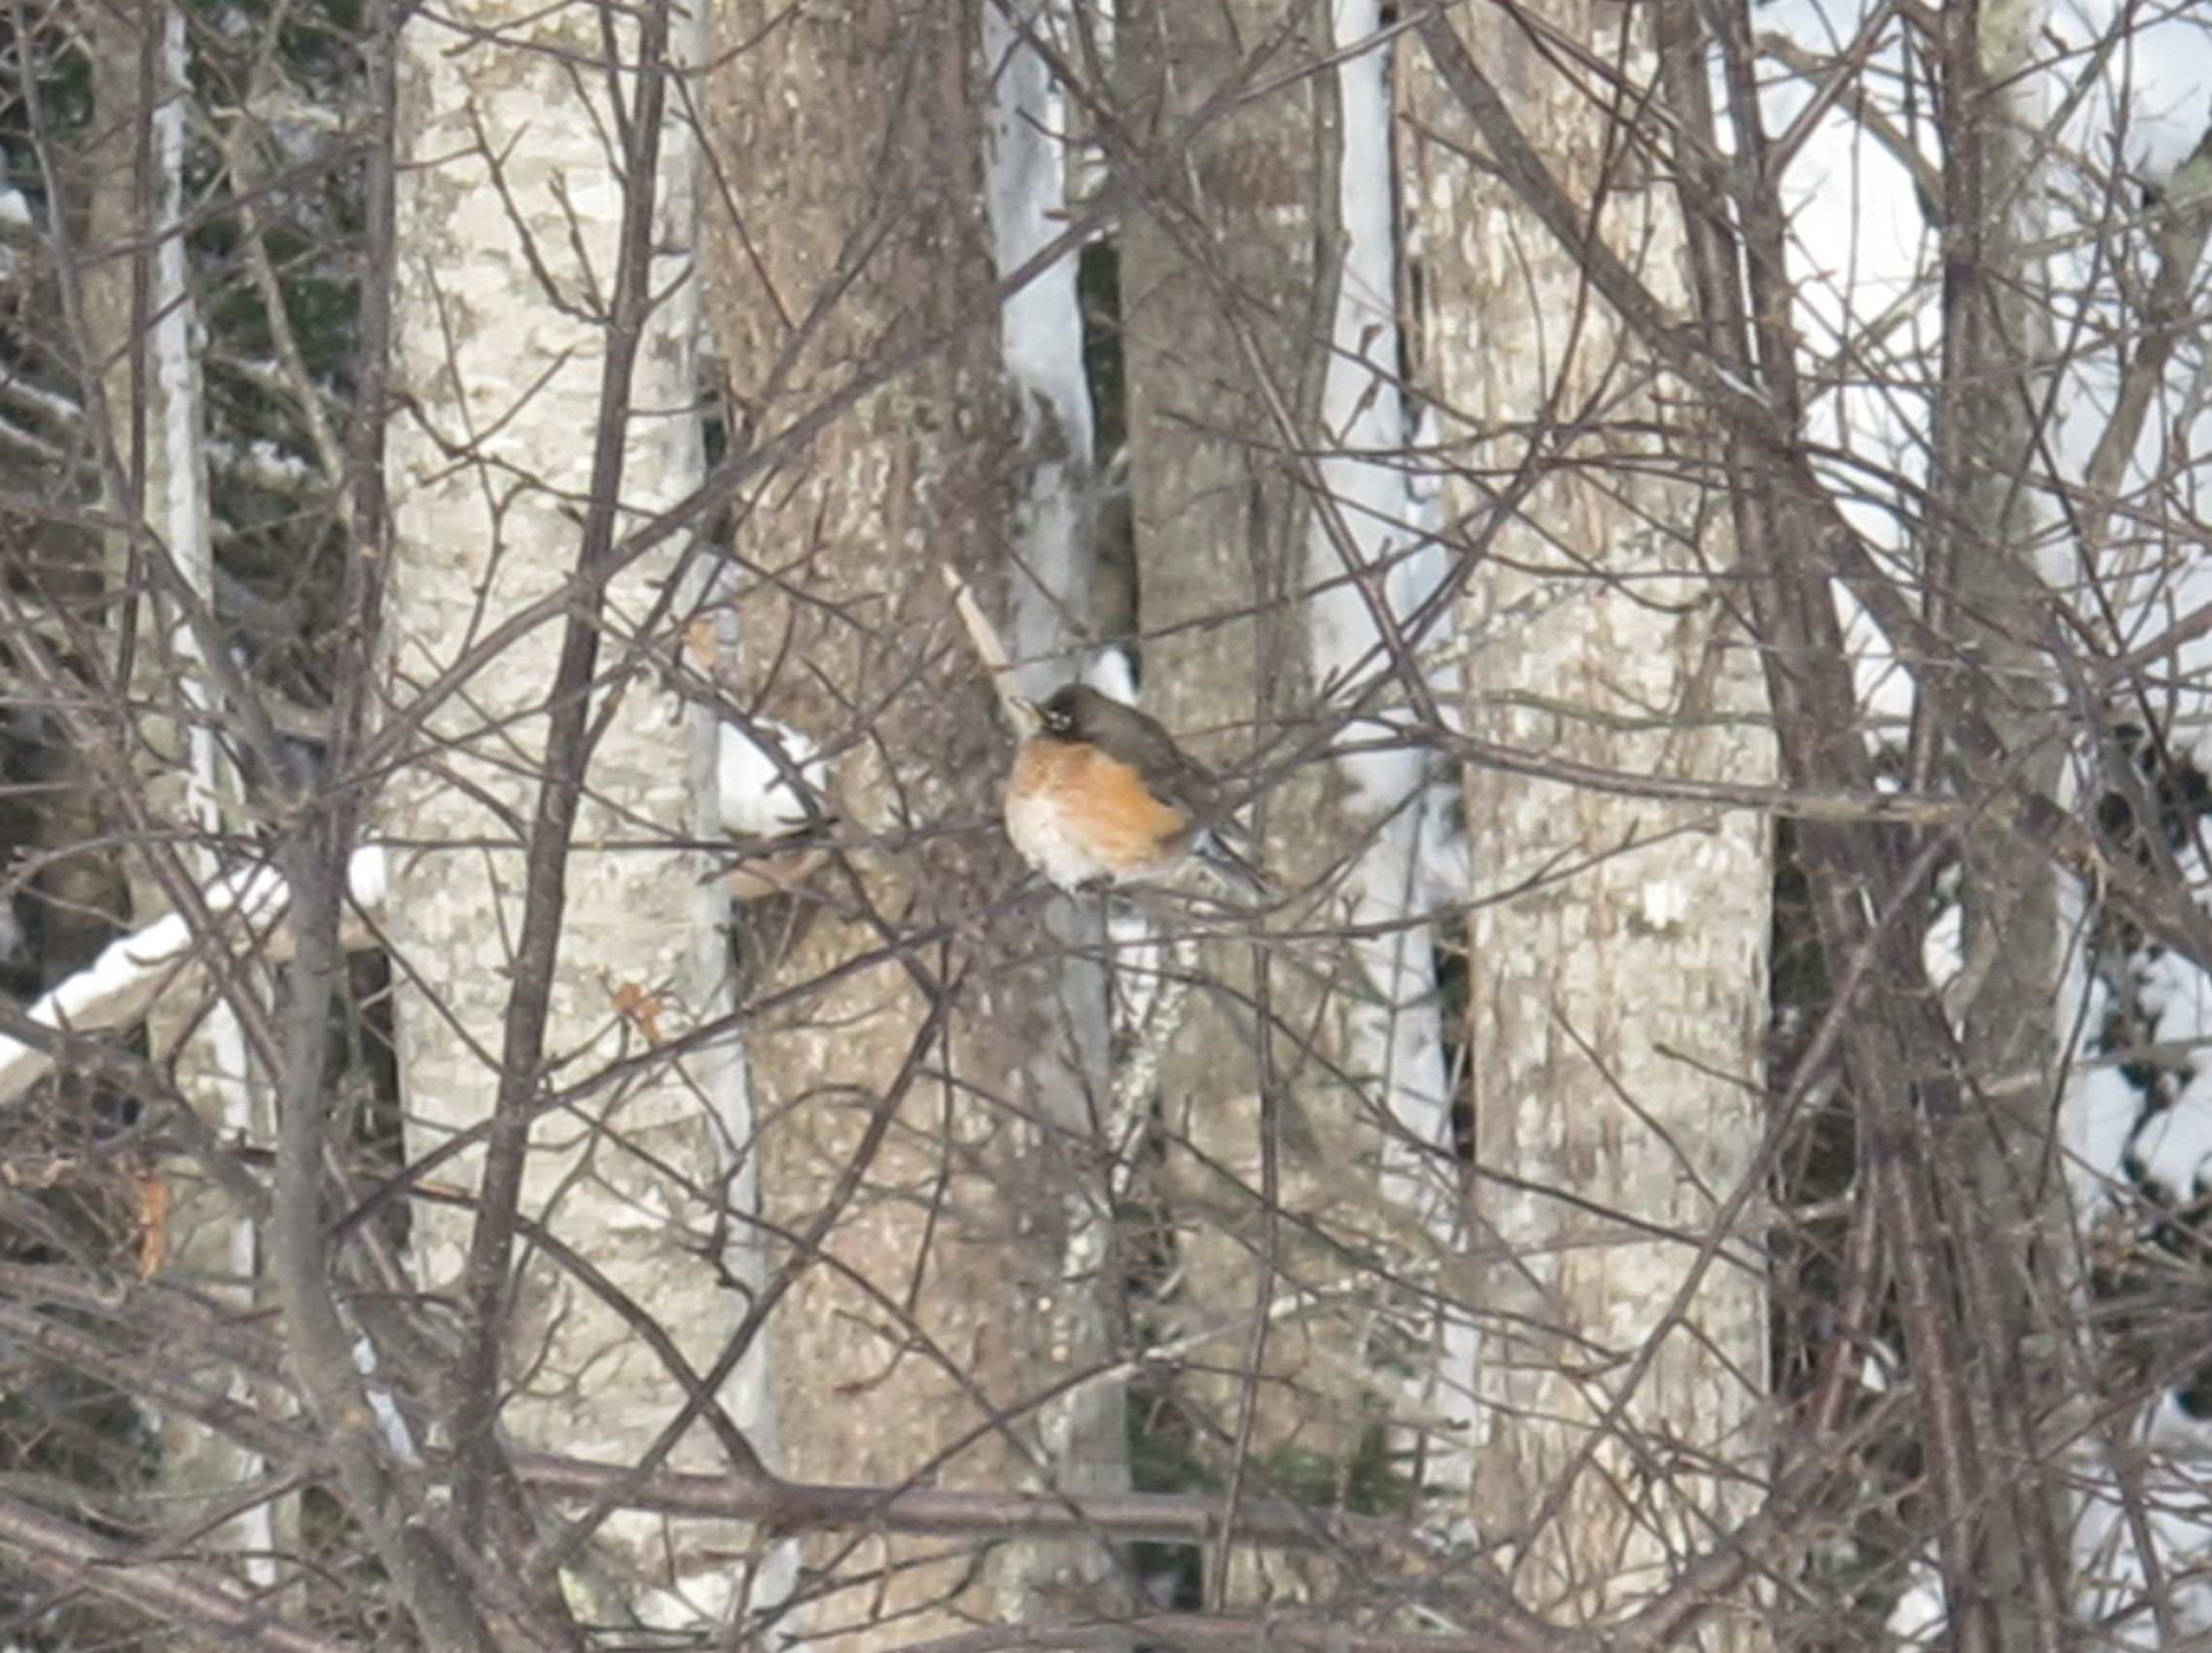 The robin spends part of each day huddled in a small apple tree.